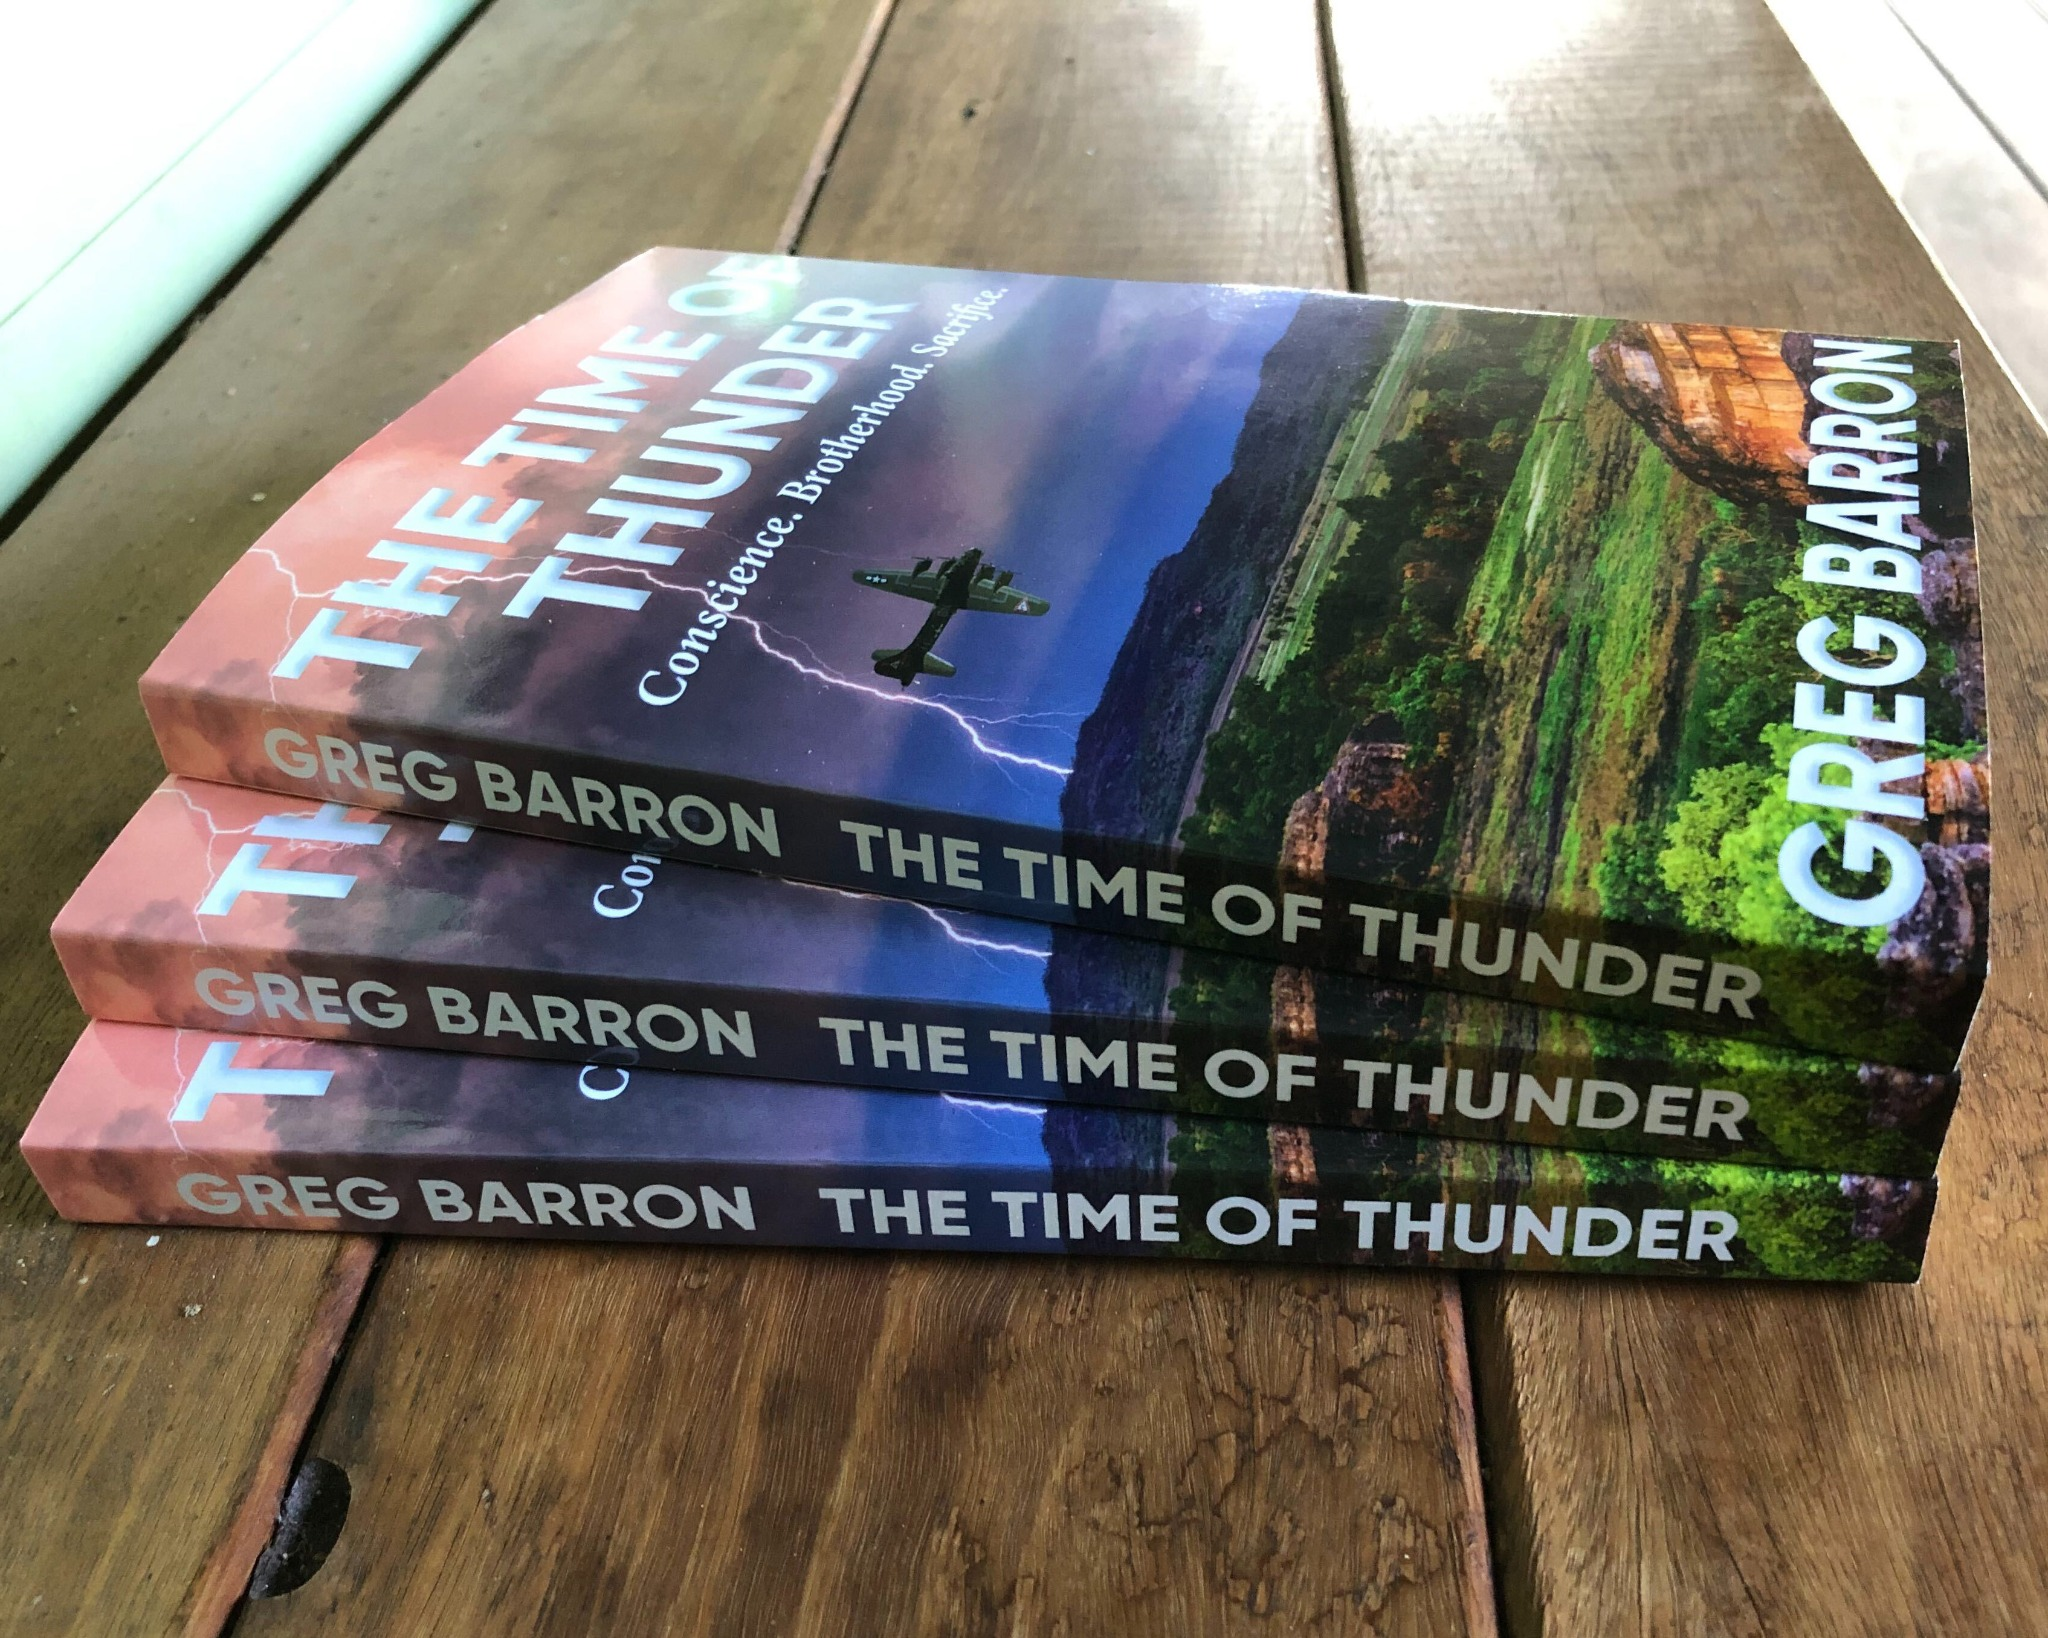 The Time of Thunder by Greg Barron